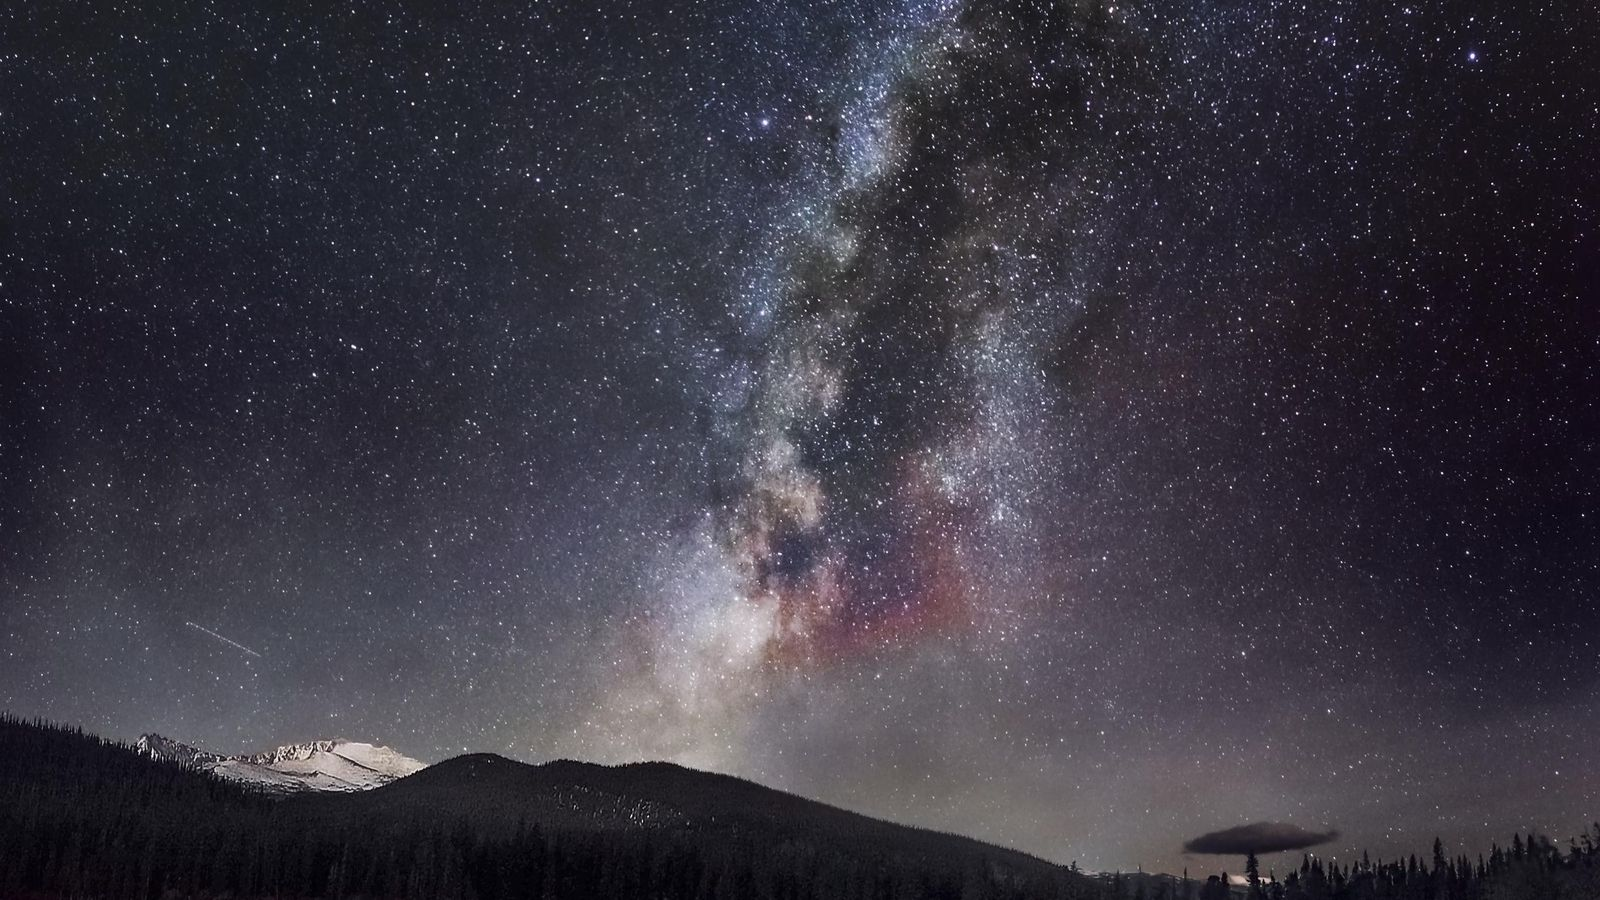 Credit: Milky Way over Colorado - Max and Dee Bernt - CC BY